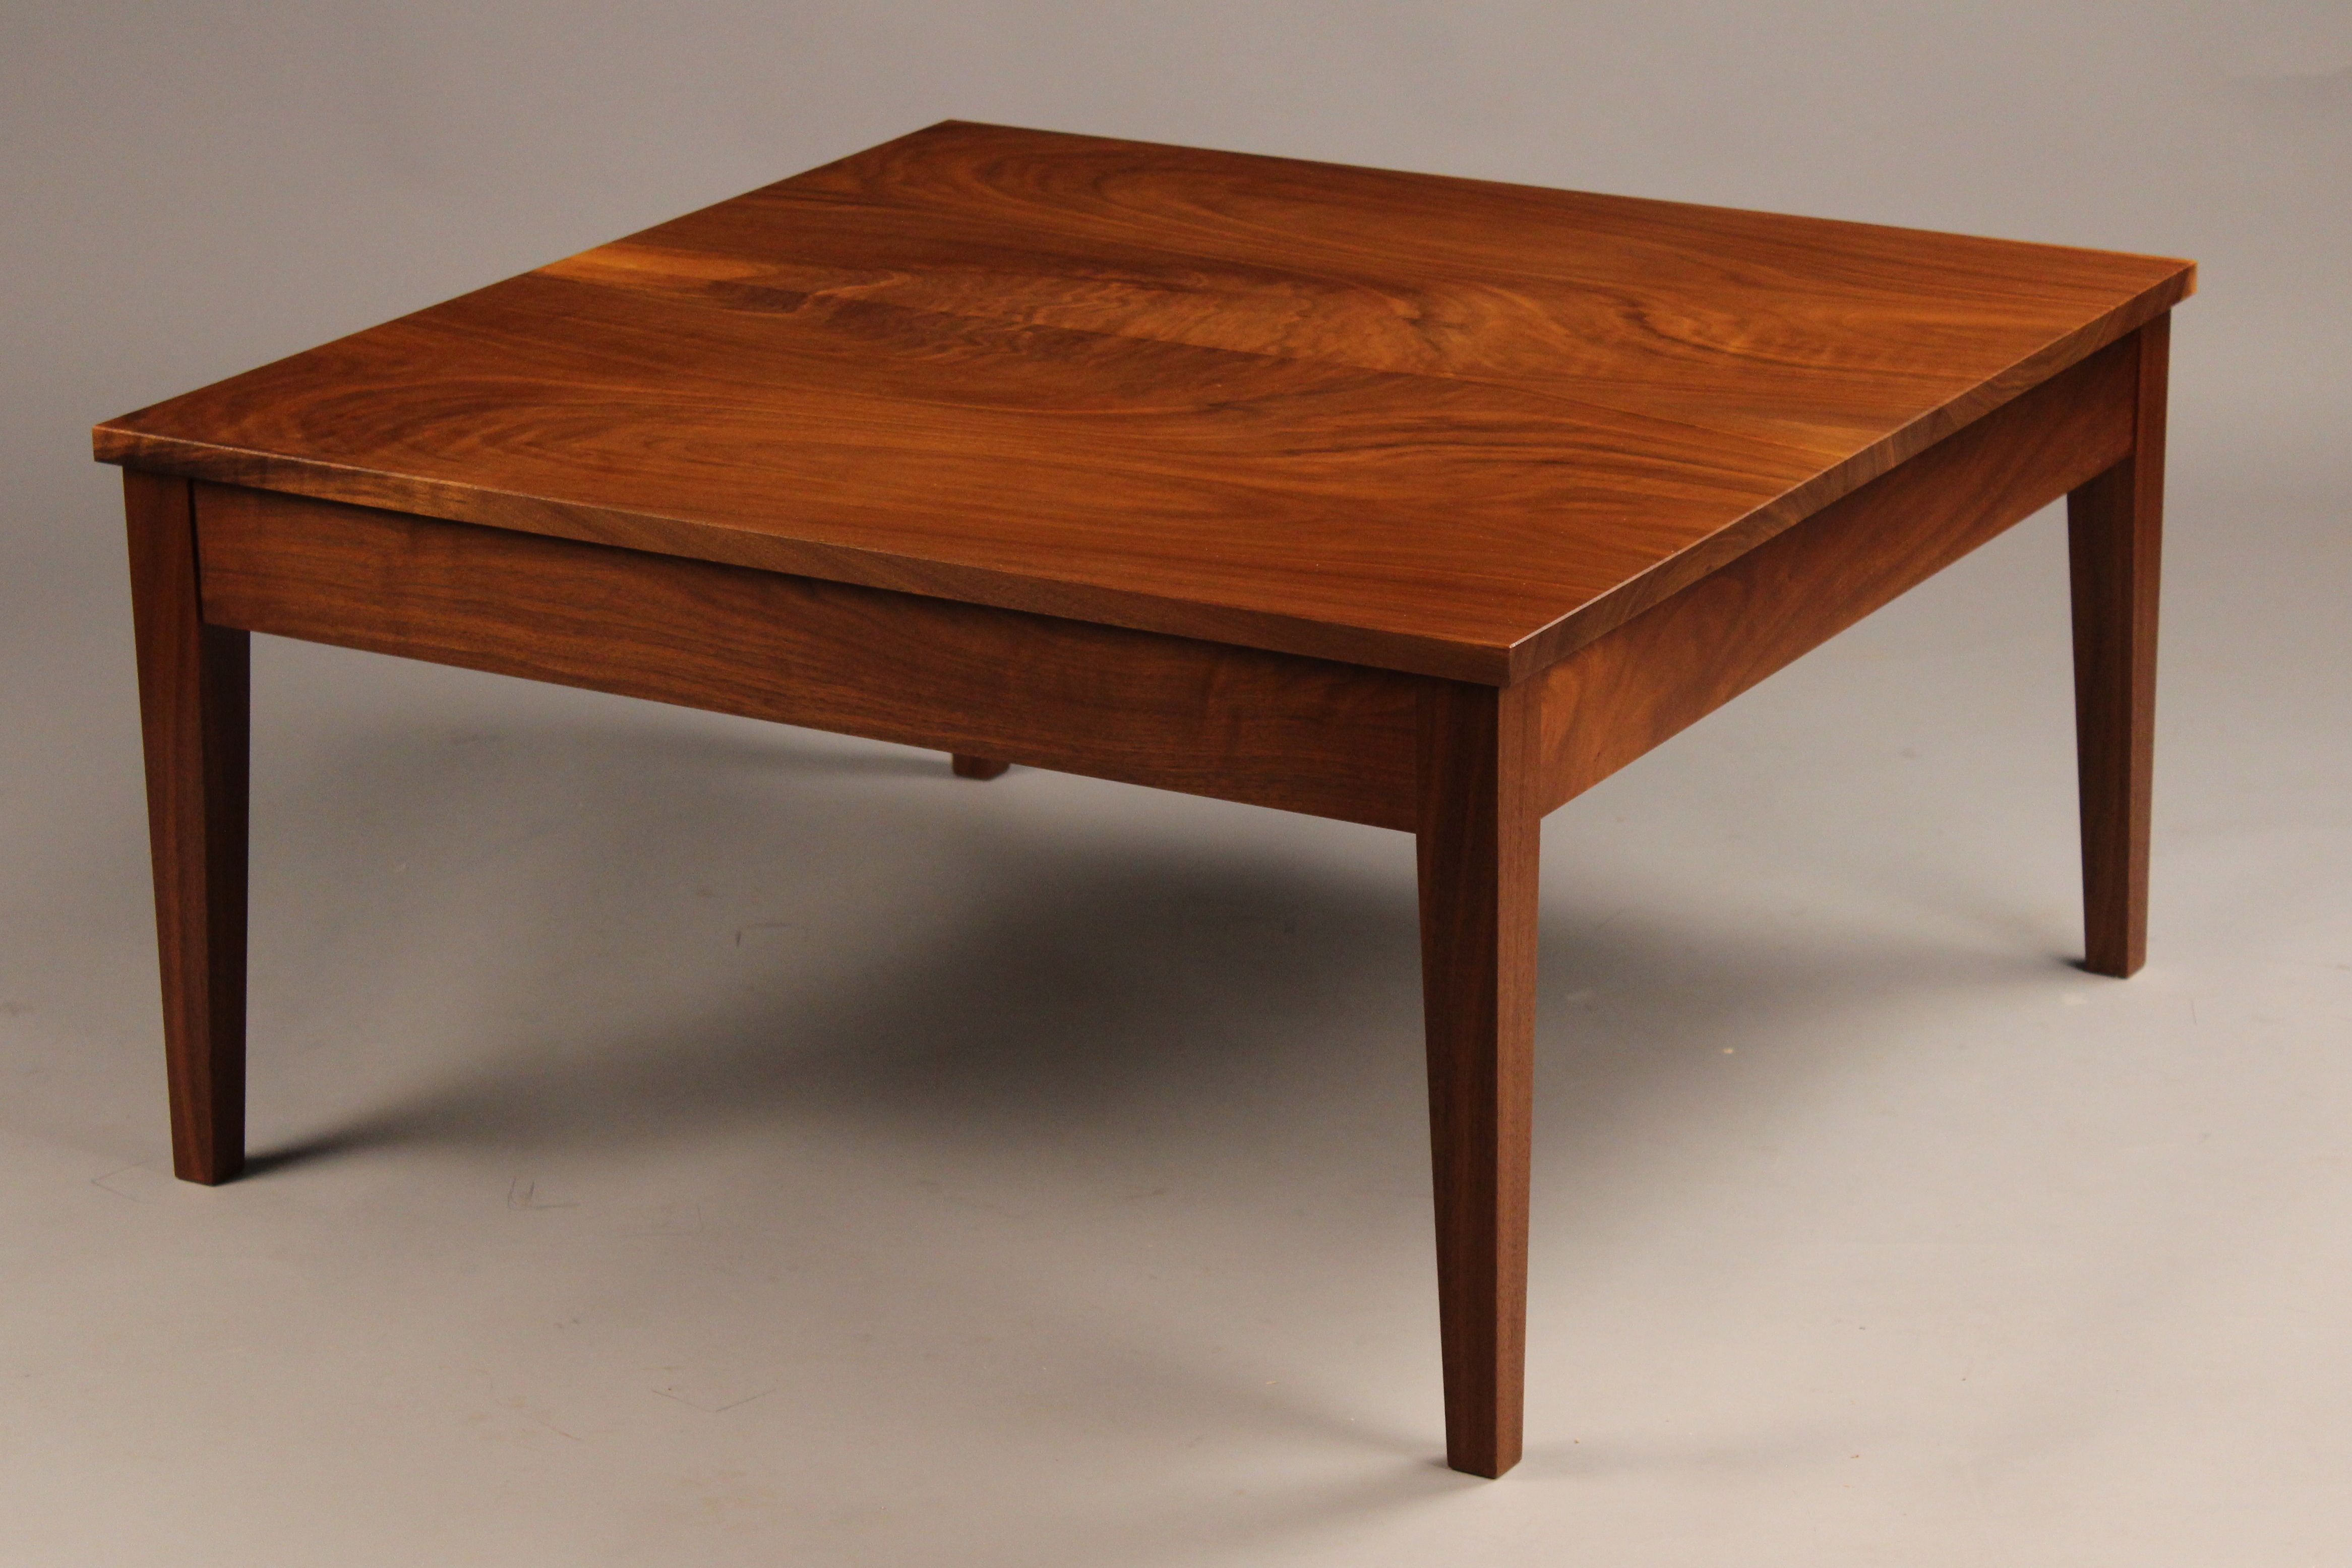 Custom Coffee Table For Sale Furniture Coffee Tables For Sale